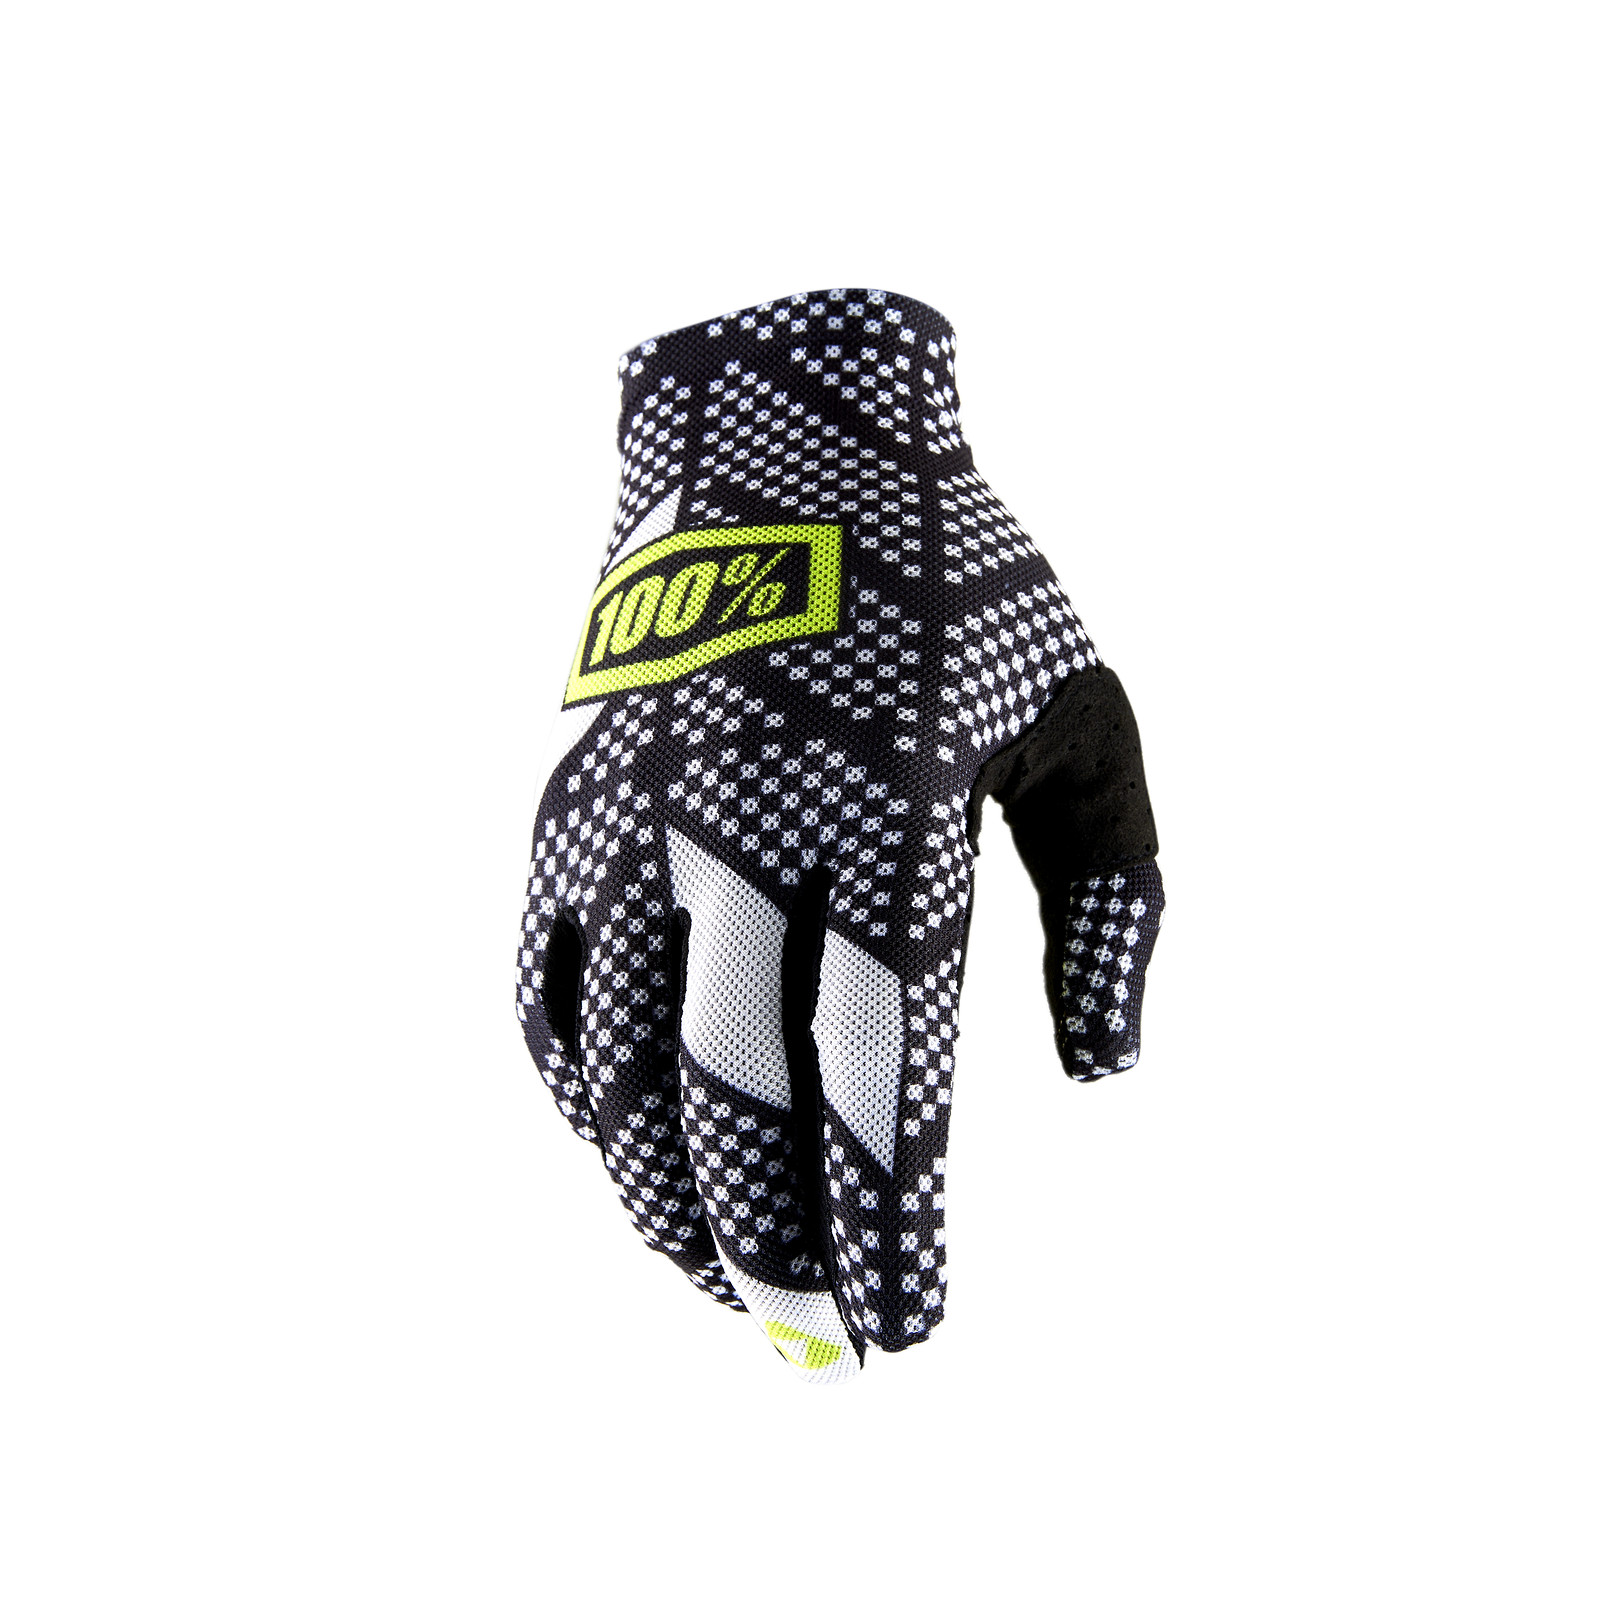 Celium 2 Glove - Code Black / White - 100percent - Motocross Pictures - Vital MX